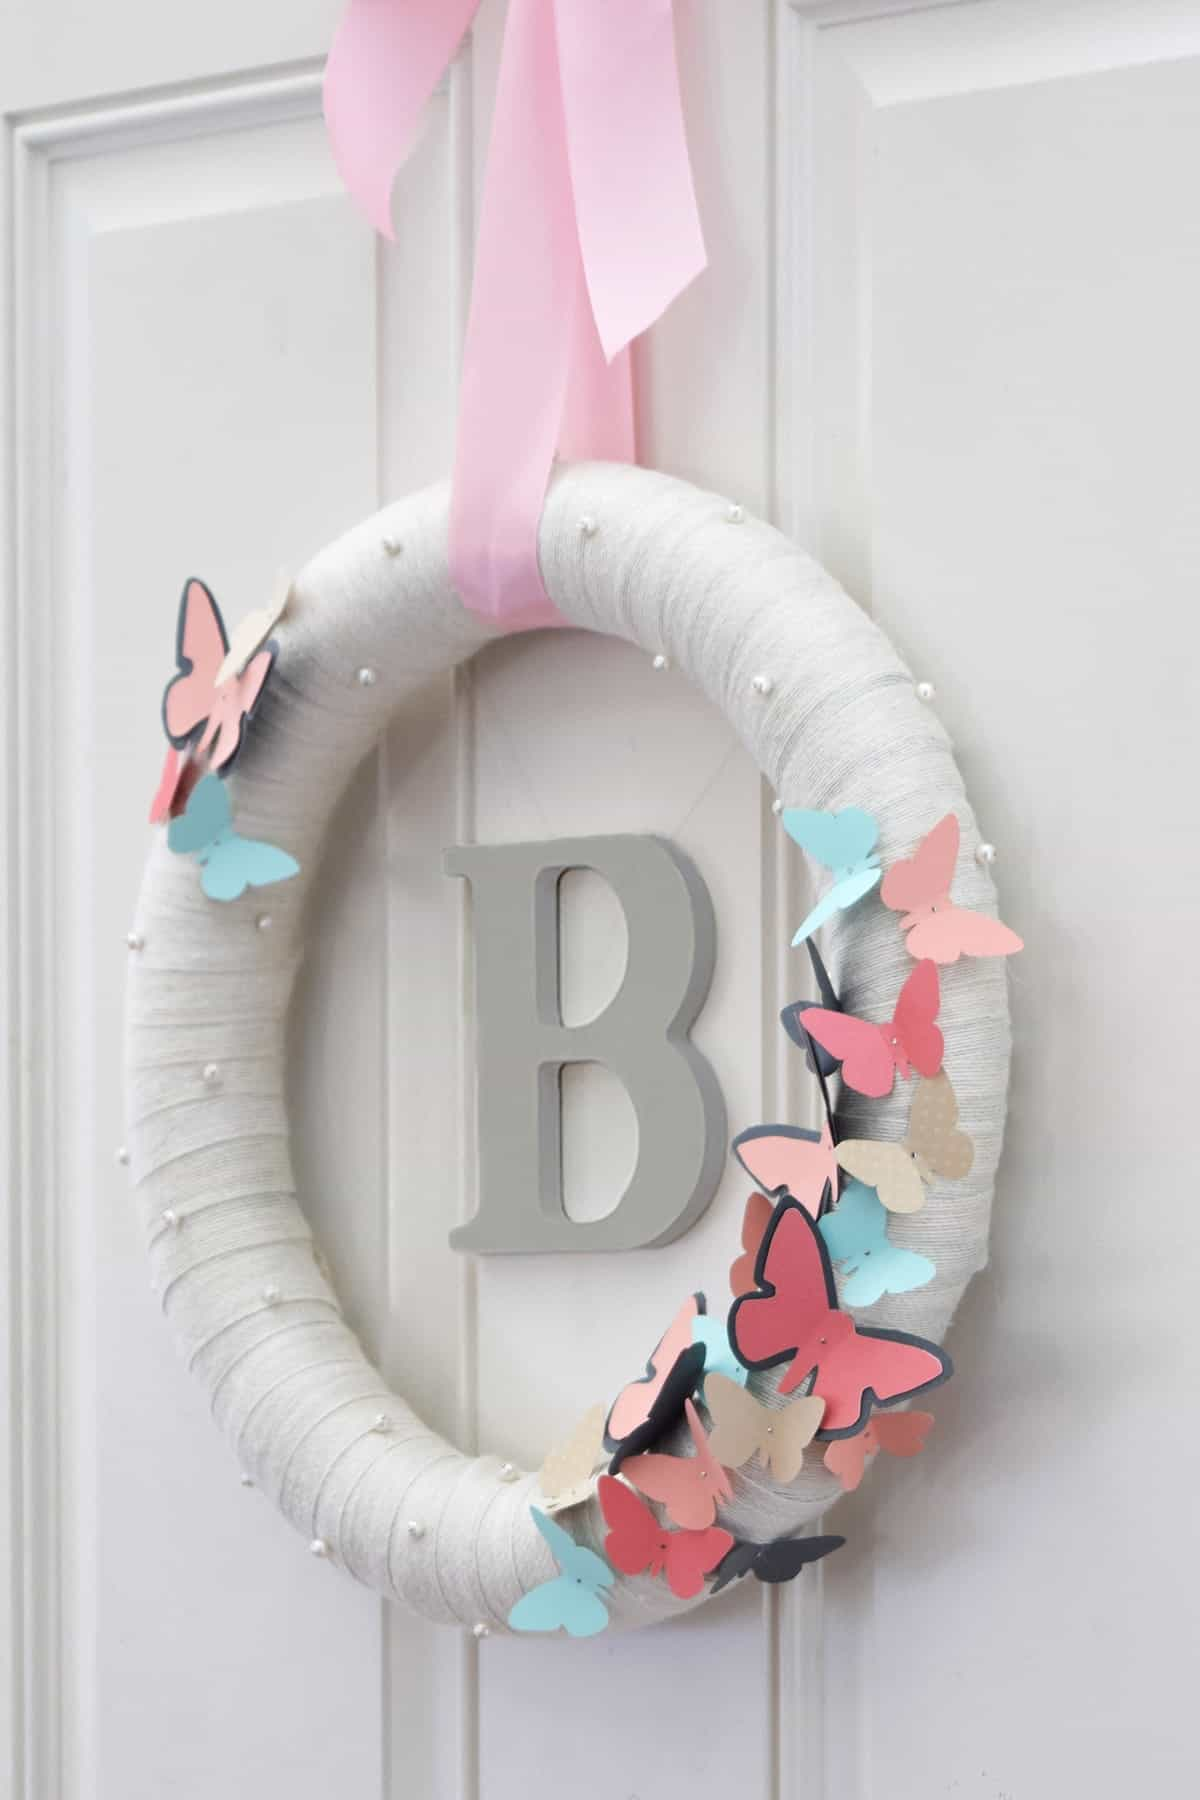 DIY Butterfly Wreath with Monogram on front door. Wrapped white wreath with blue and pink butterflies and pearls on pink ribbon.